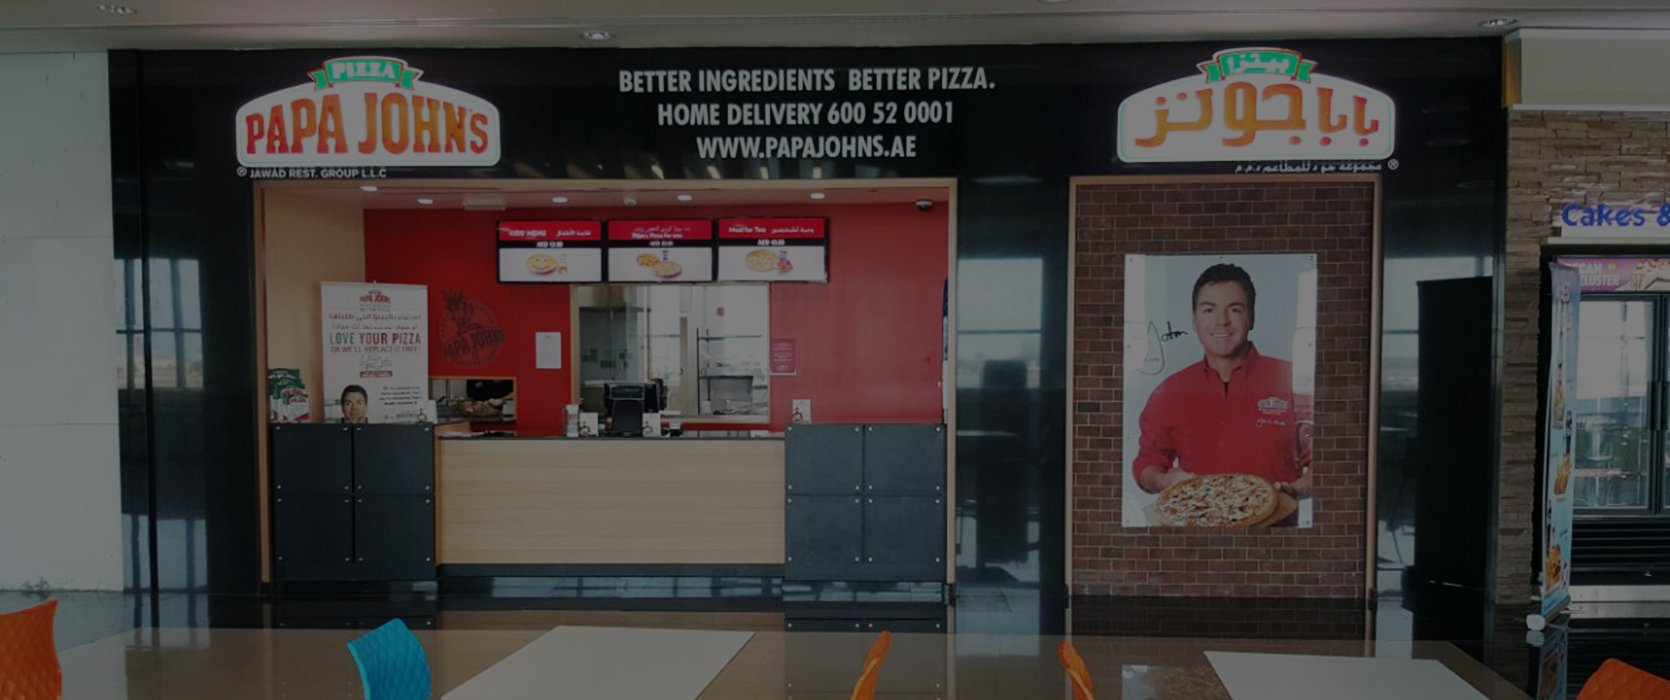 Papa Johns Digital Printing